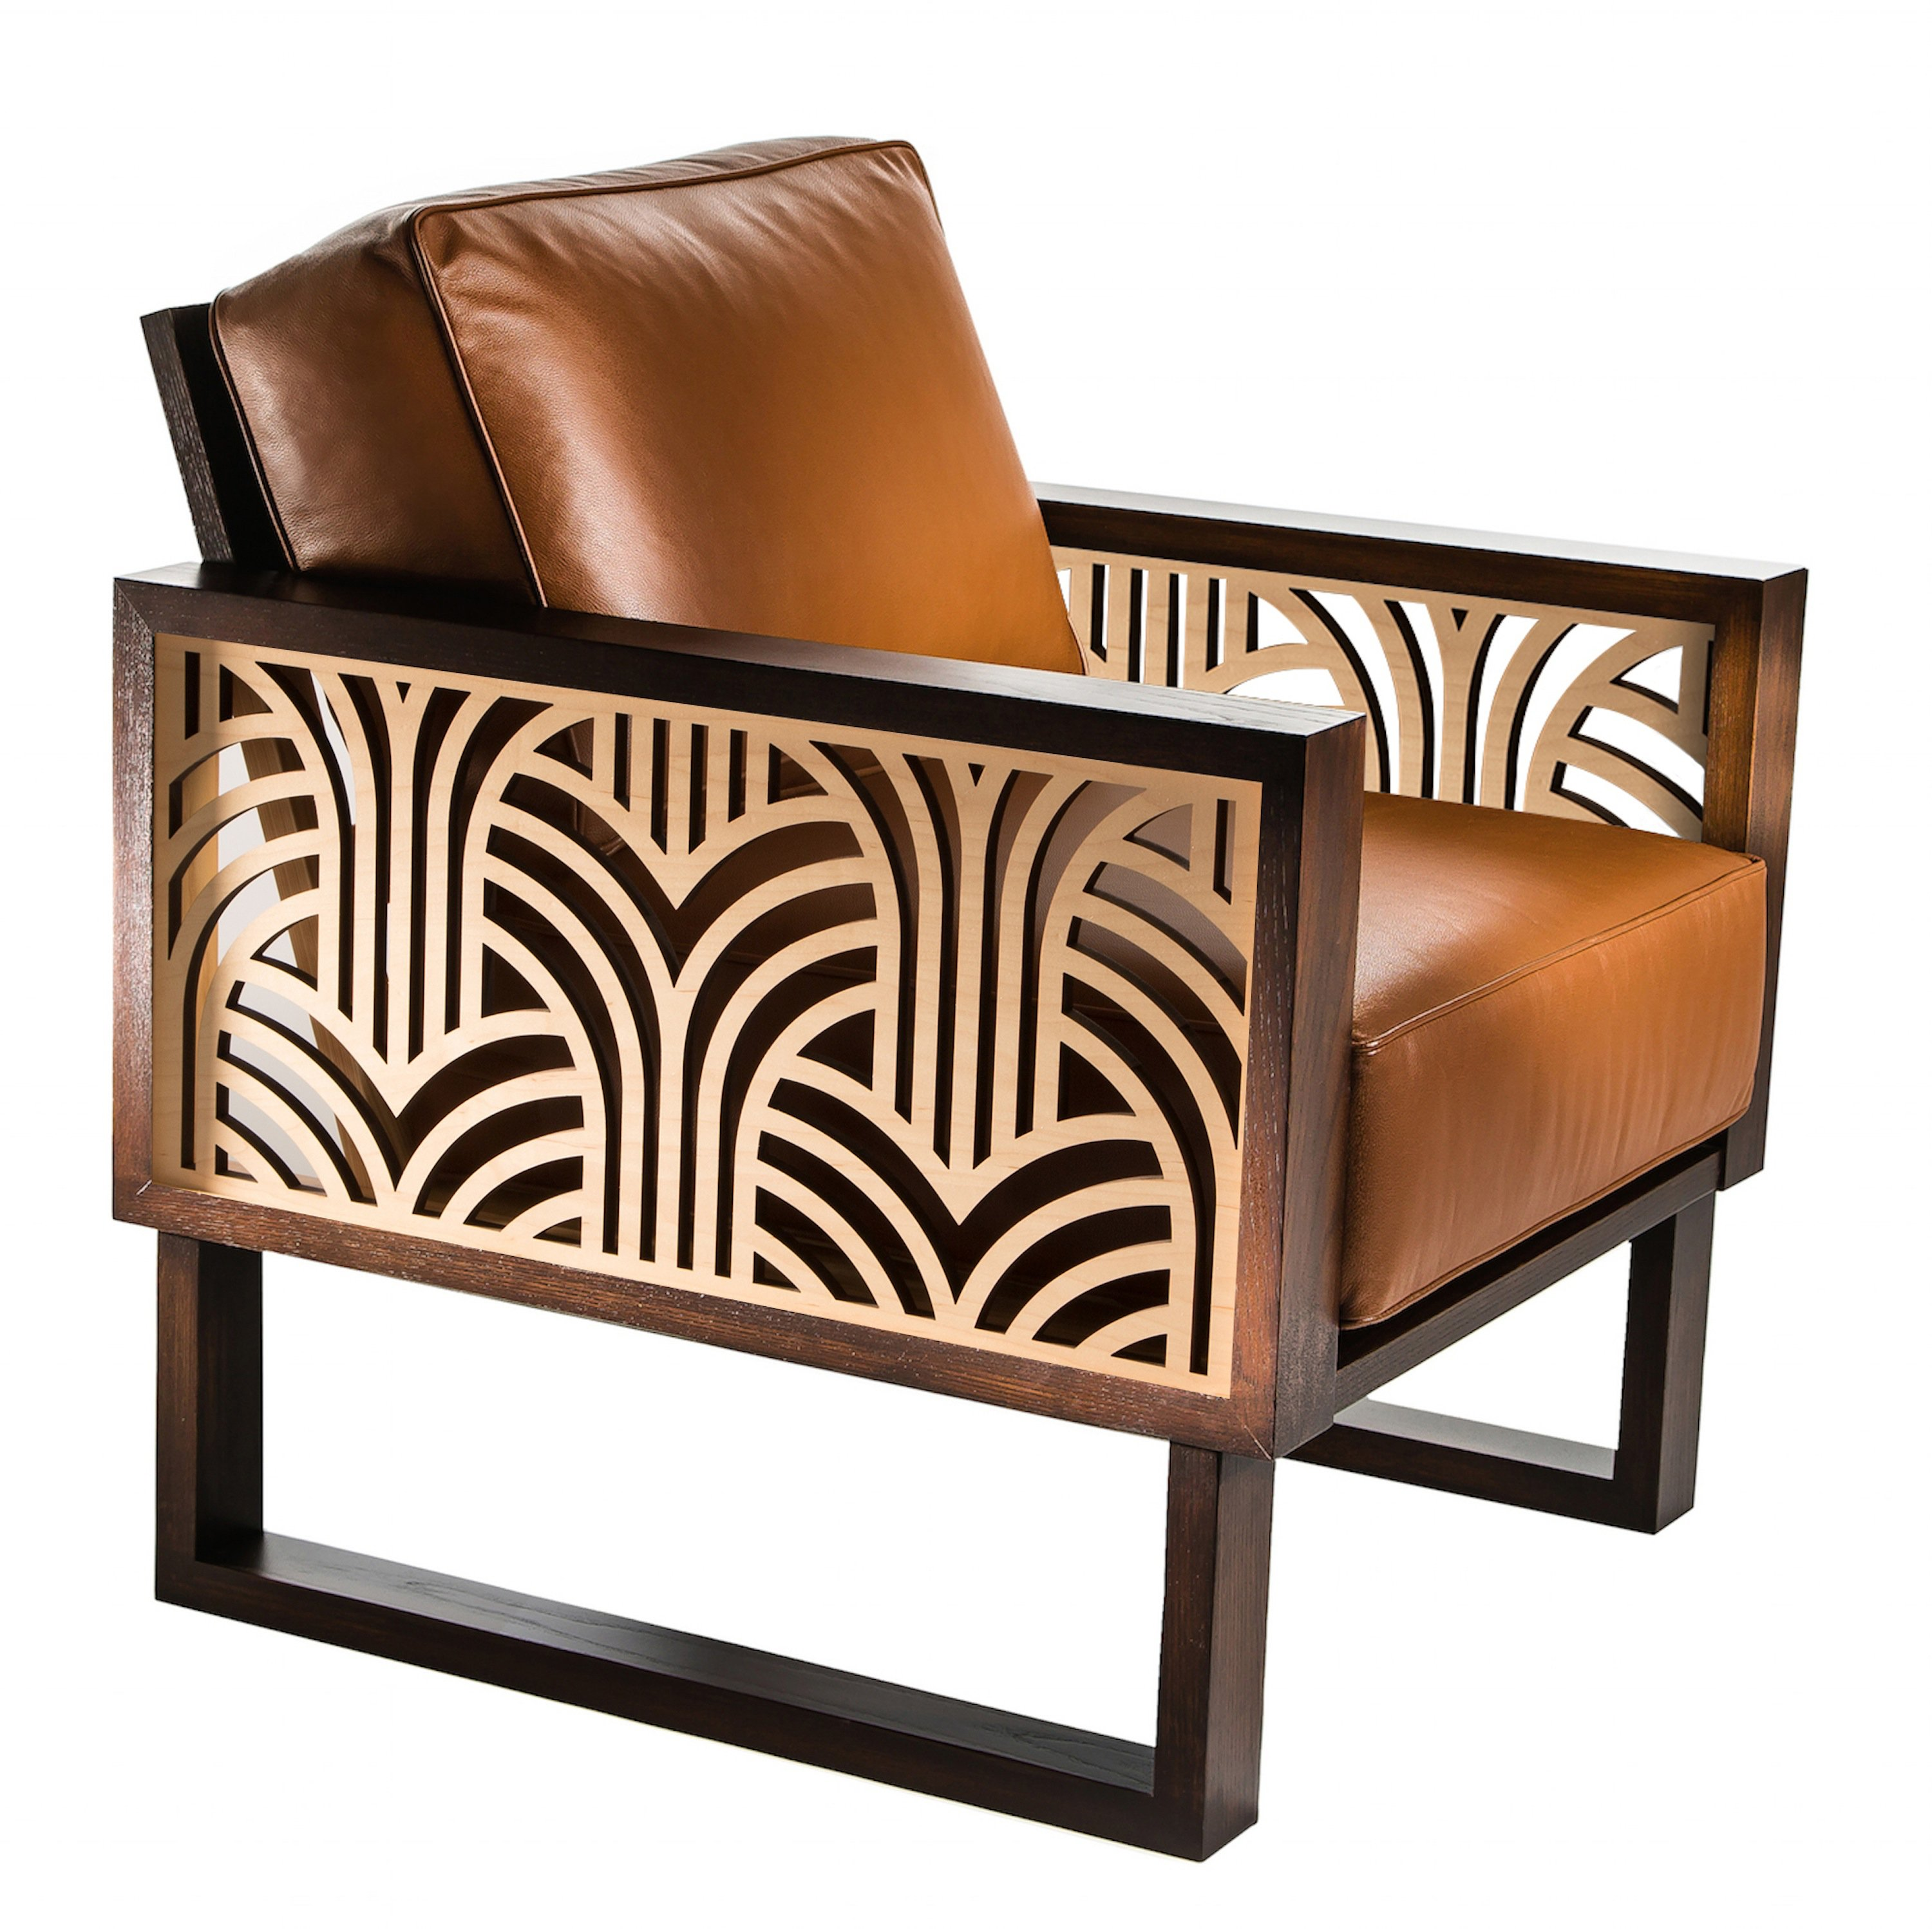 Terrific Art Deco Leather Lounge Chair Spiritservingveterans Wood Chair Design Ideas Spiritservingveteransorg